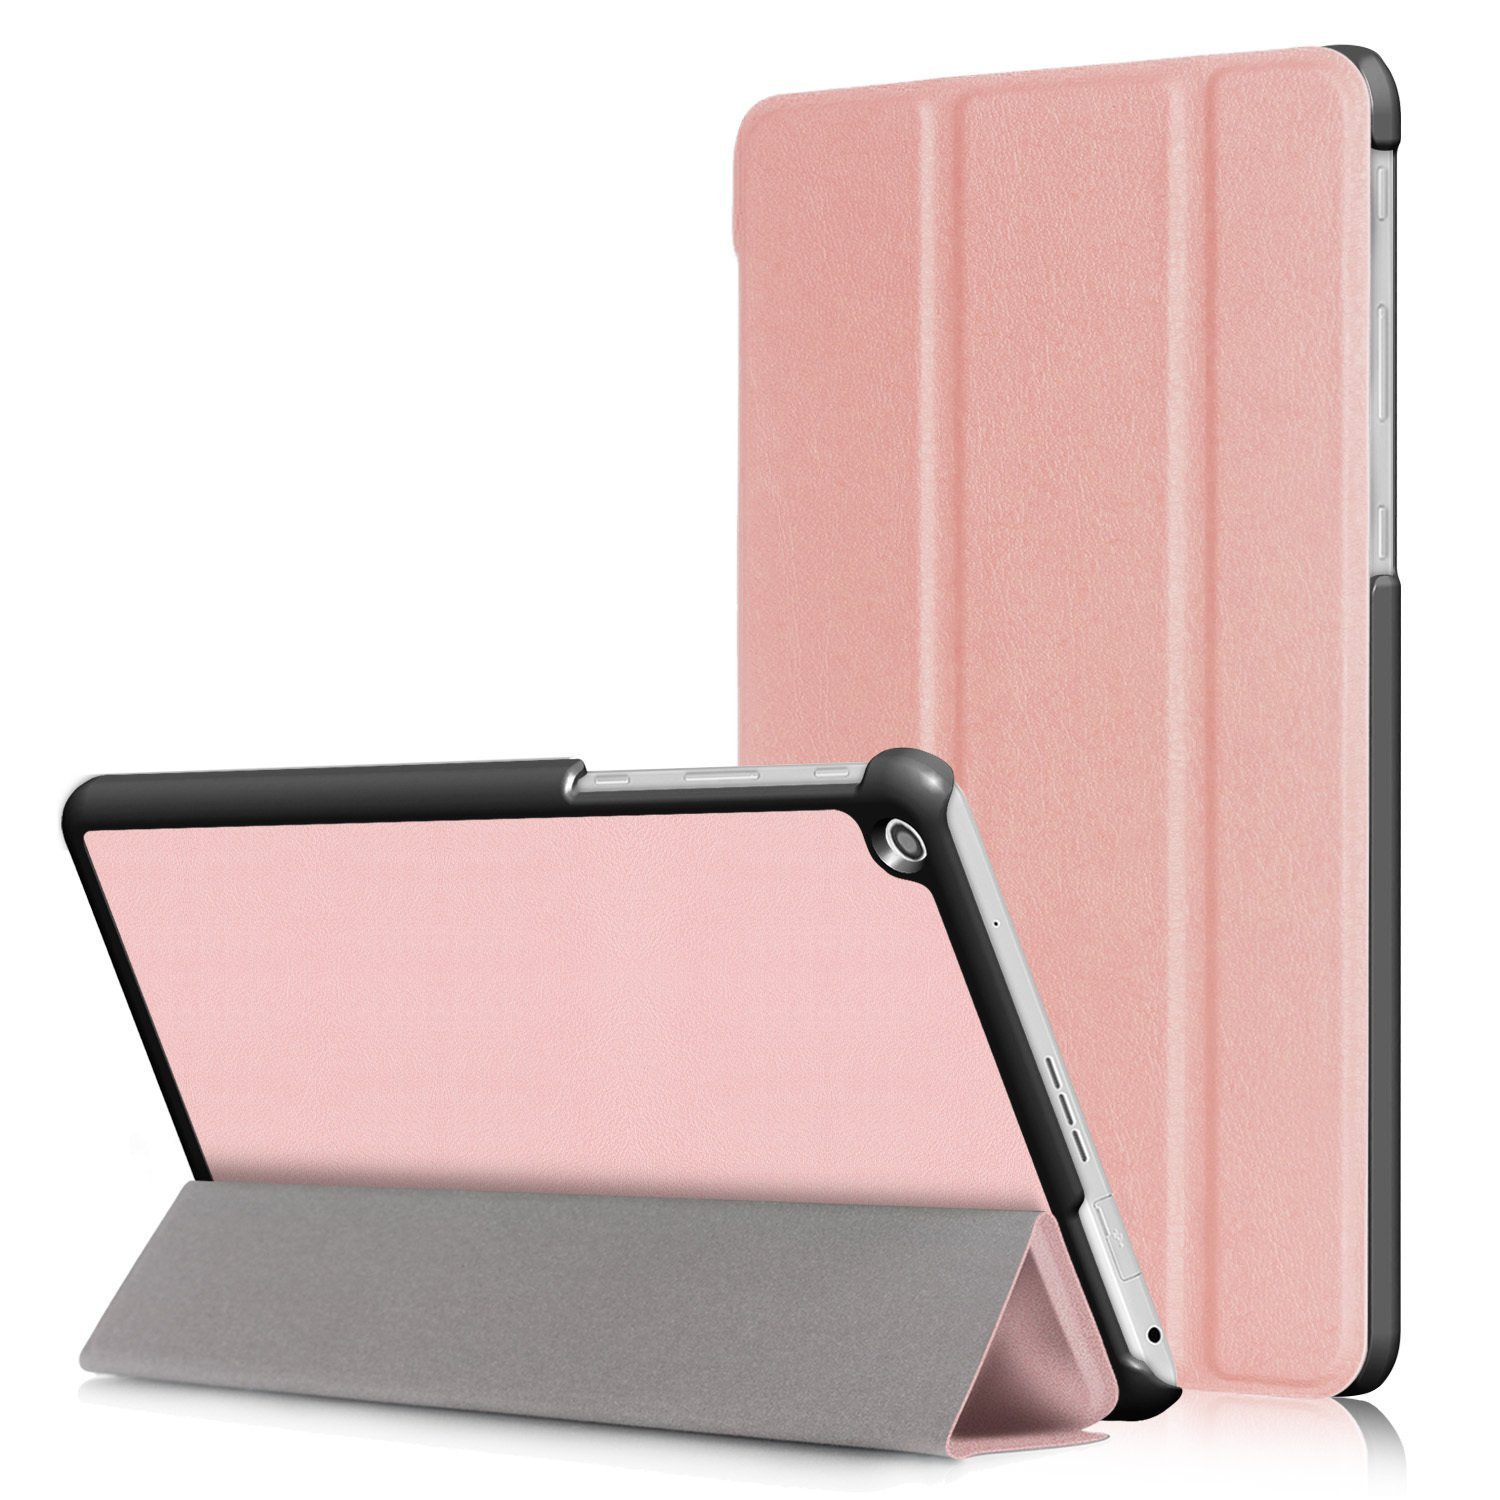 "LG G PAD 3 10.1 X760 Case, Goodest Ultra Slim Tri-Fold Magnetic PU Leather Stand Cover Hard Protector Shell Case for LG G PAD 3 10.1 X760 10.1"" Tablet, Rosegold"